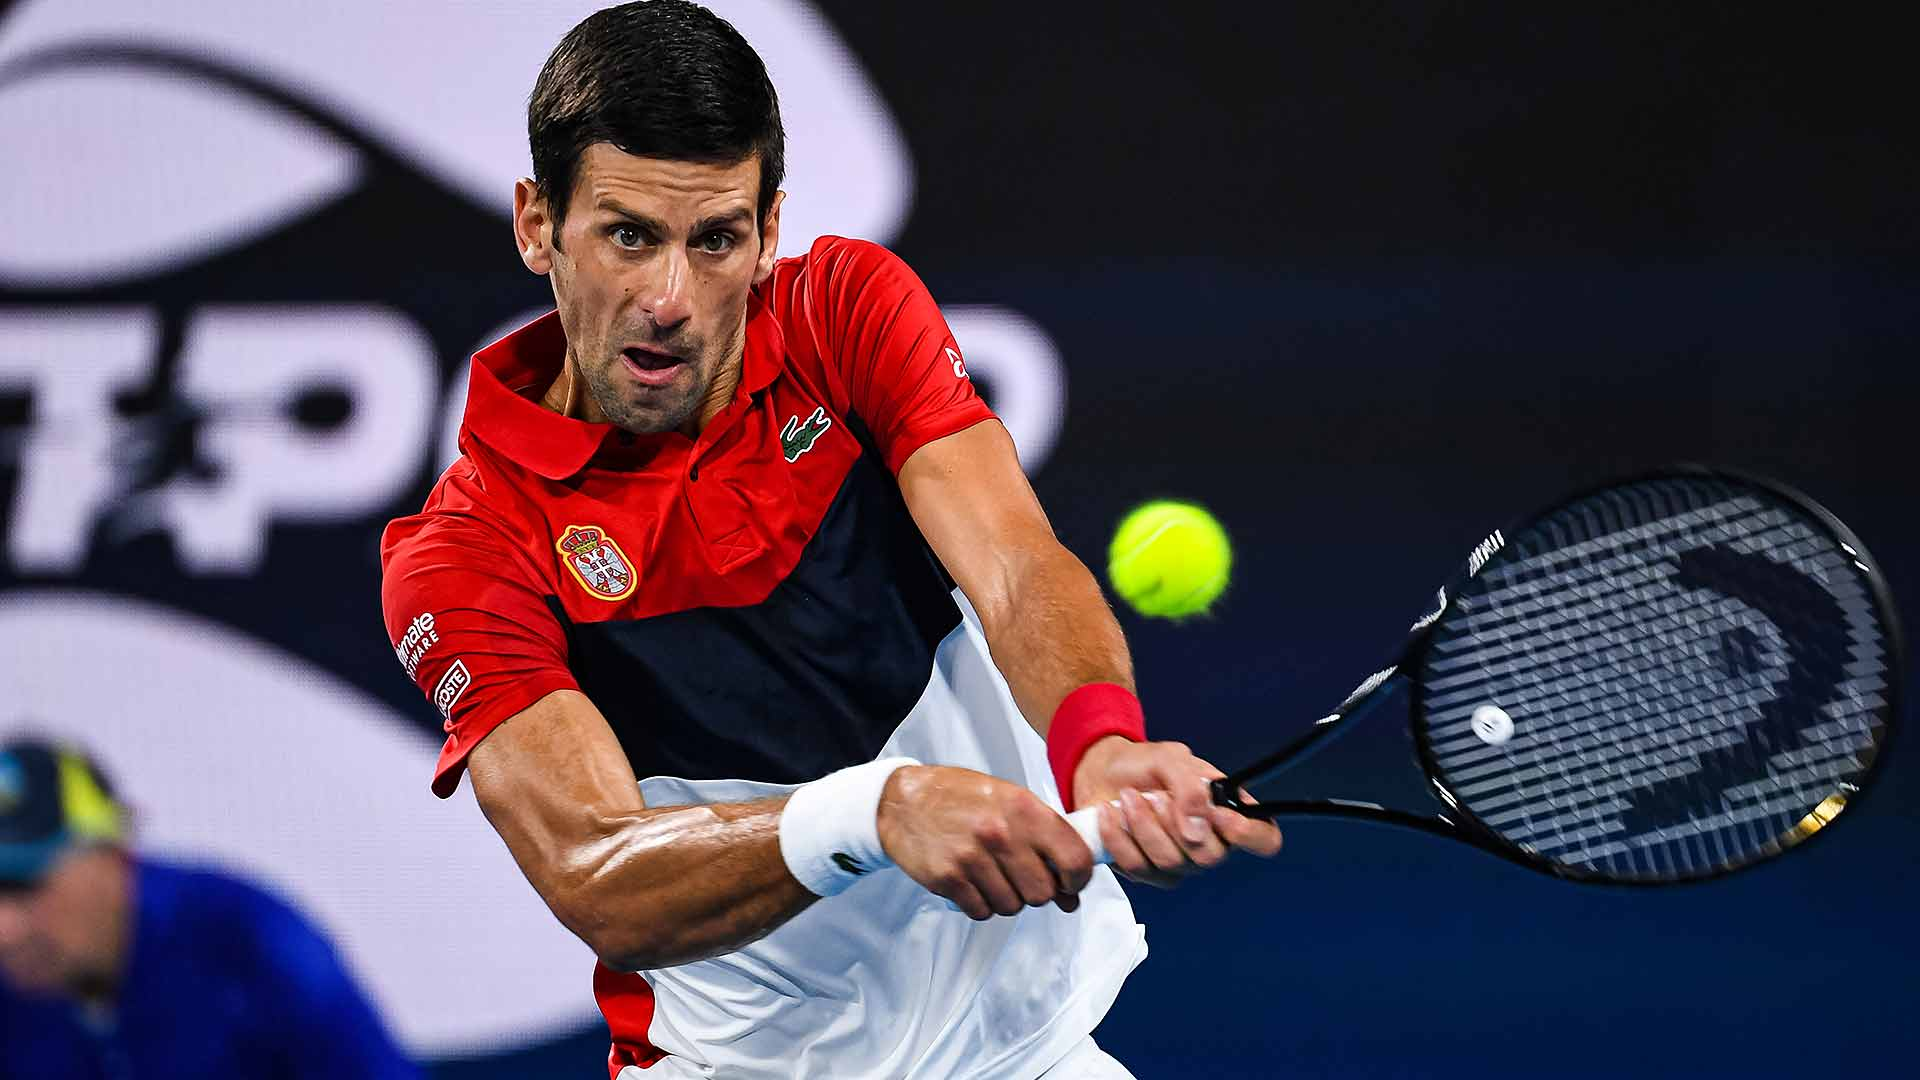 Novak Djokovic looks to lead Serbia to the ATP Cup title in Sydney.